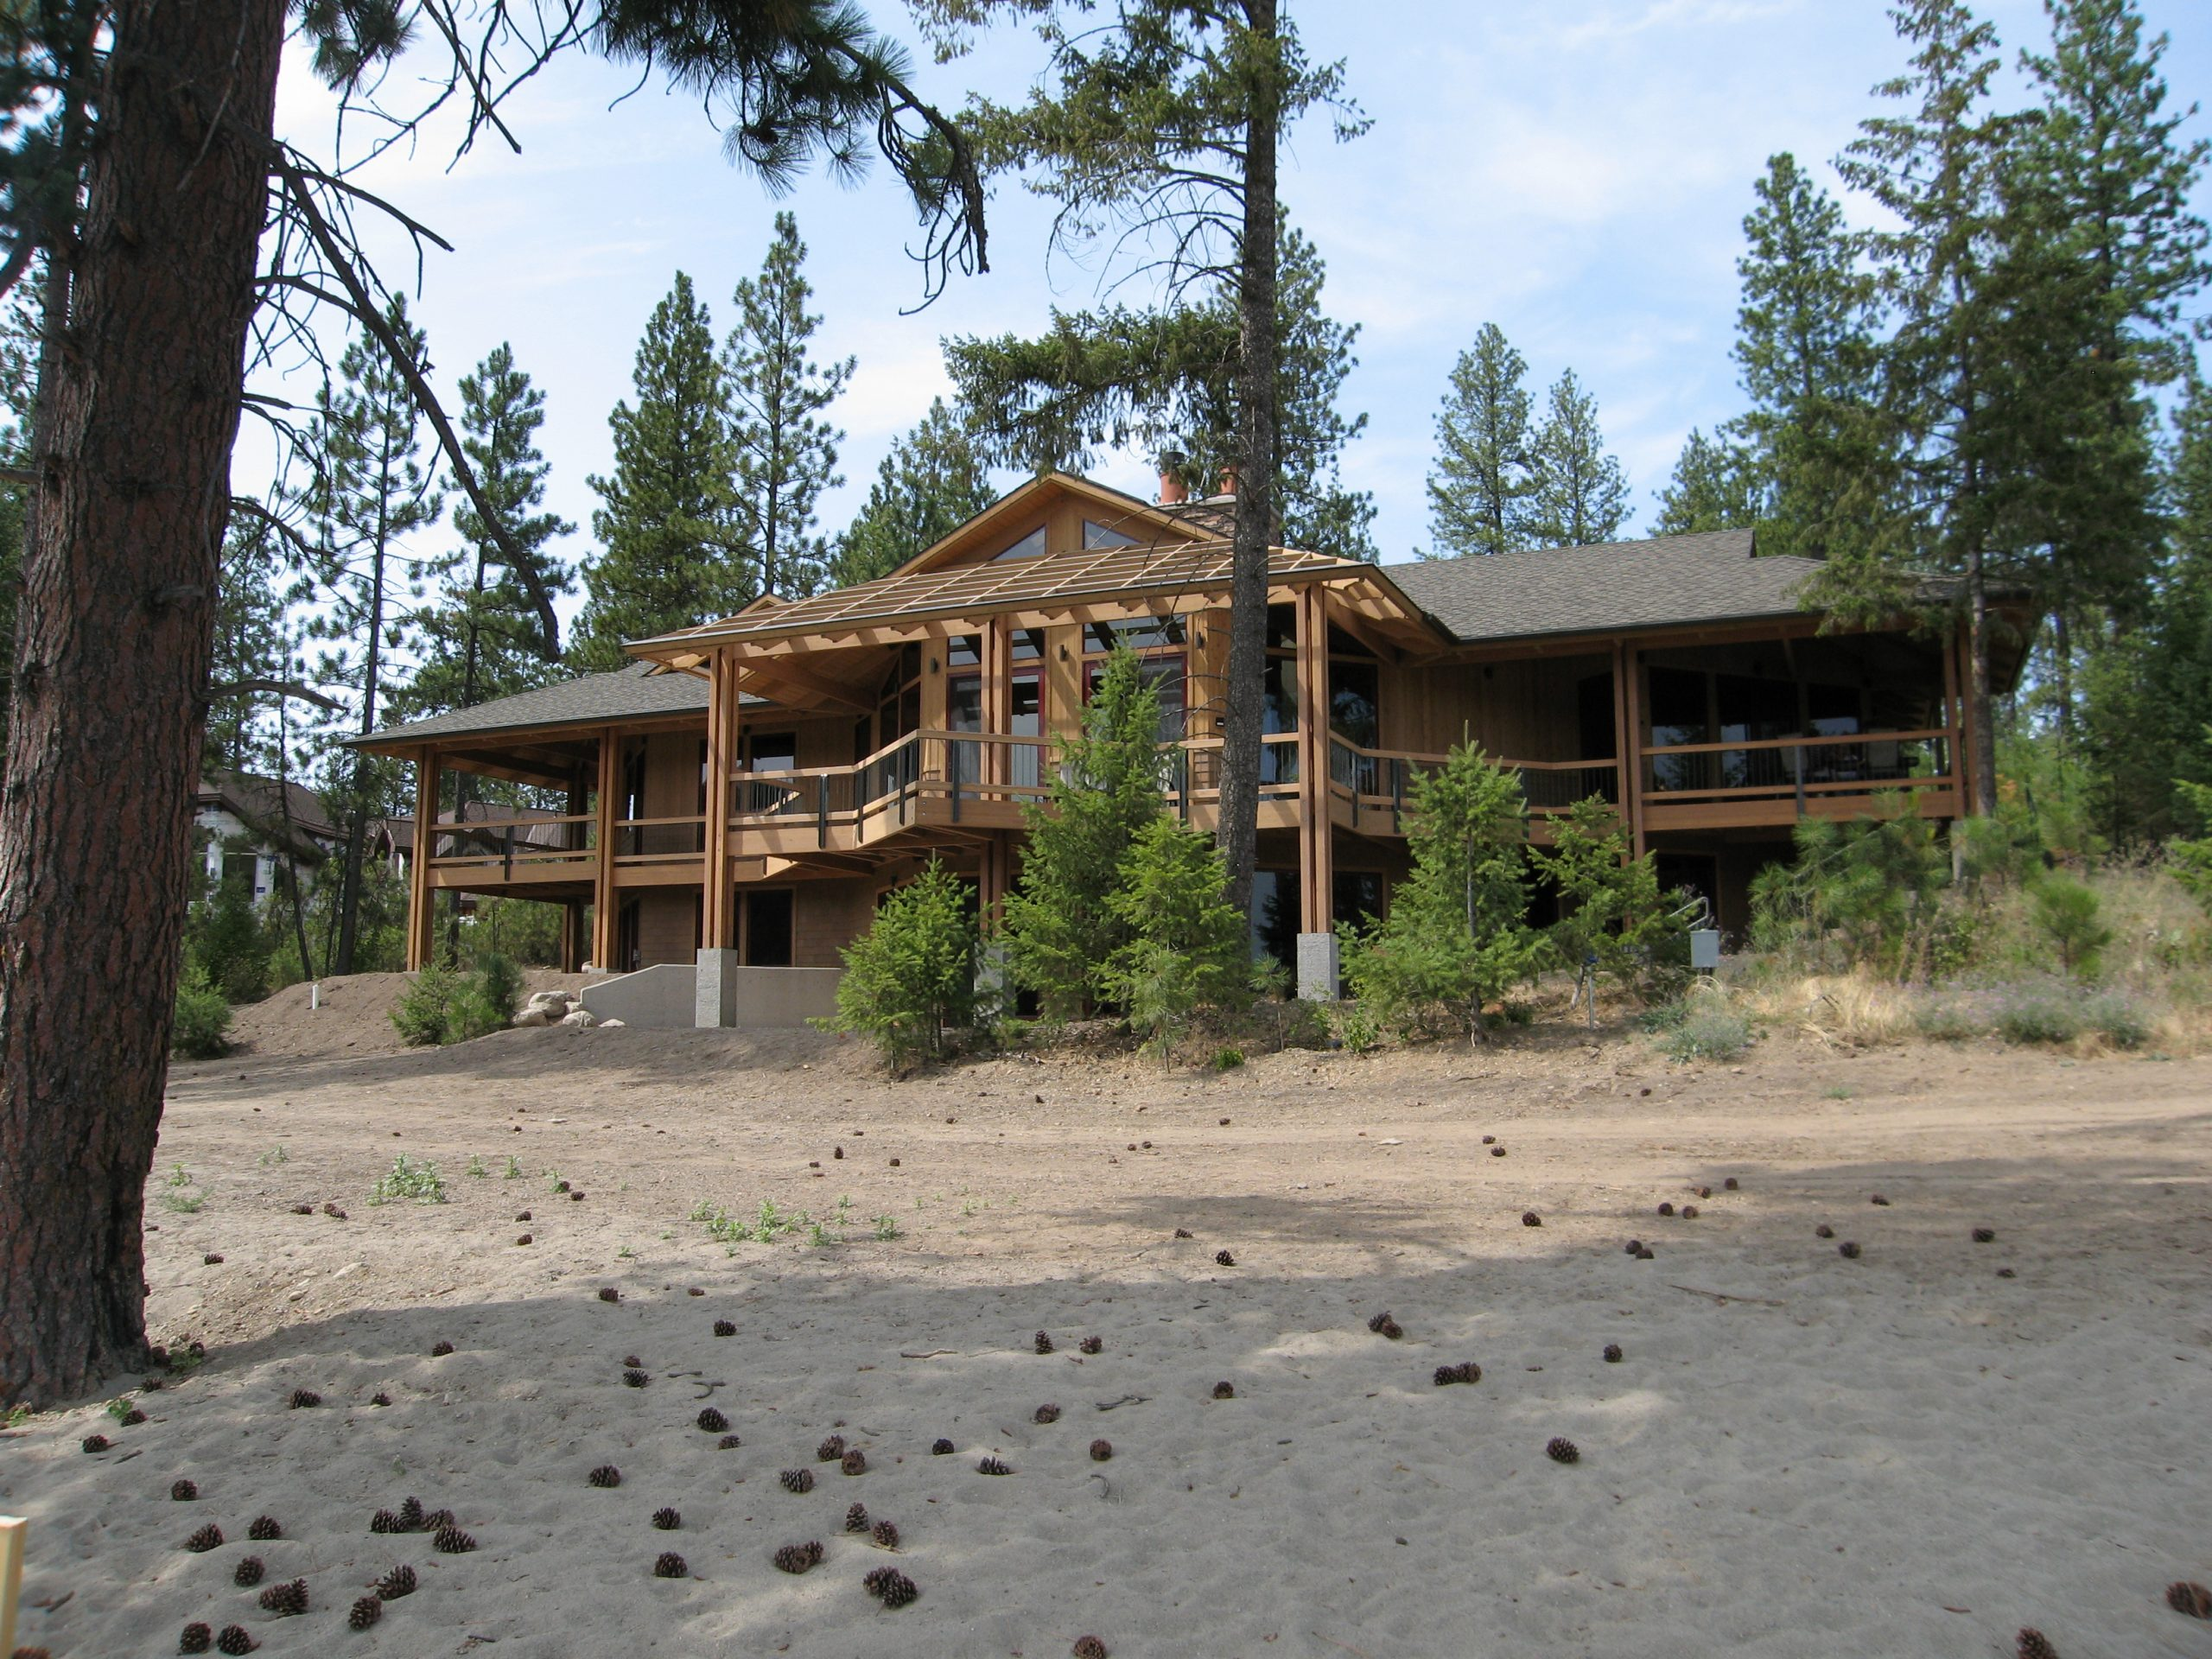 River residence is a custom home located in a beautiful waterfront setting on the Spokane River. The home features vaulted, wood-decked ceilings and a multitude of windows capturing the river views from almost every room.